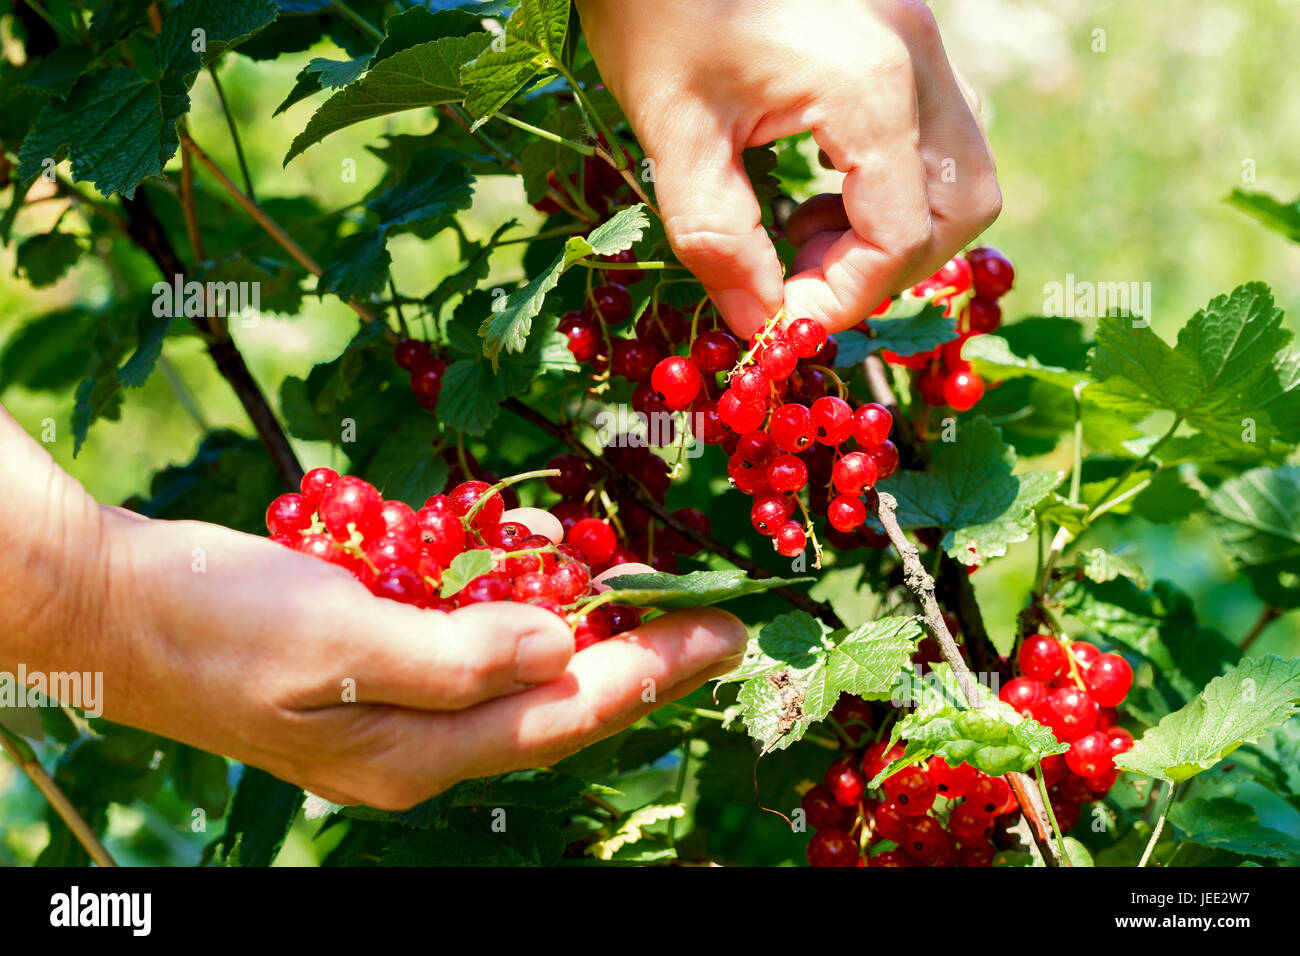 Female hands tear off red currant berries on a sunny day - Stock Image